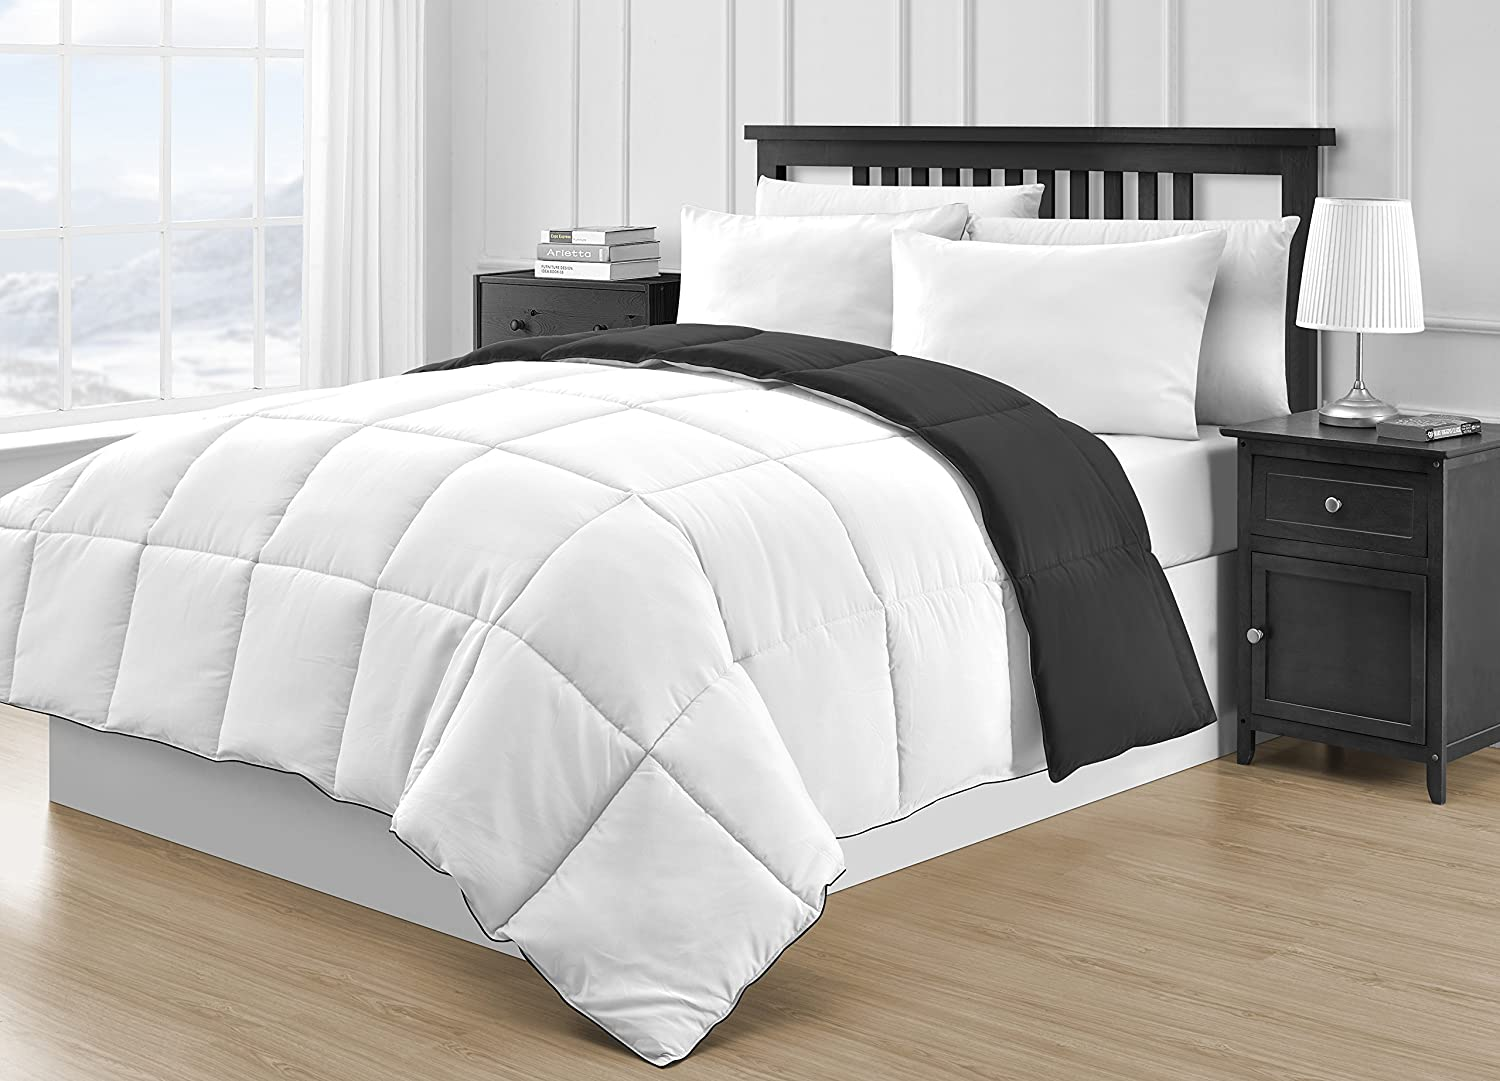 P&R Bedding Reversible Microfiber Black & White 3-Piece Comforter Set